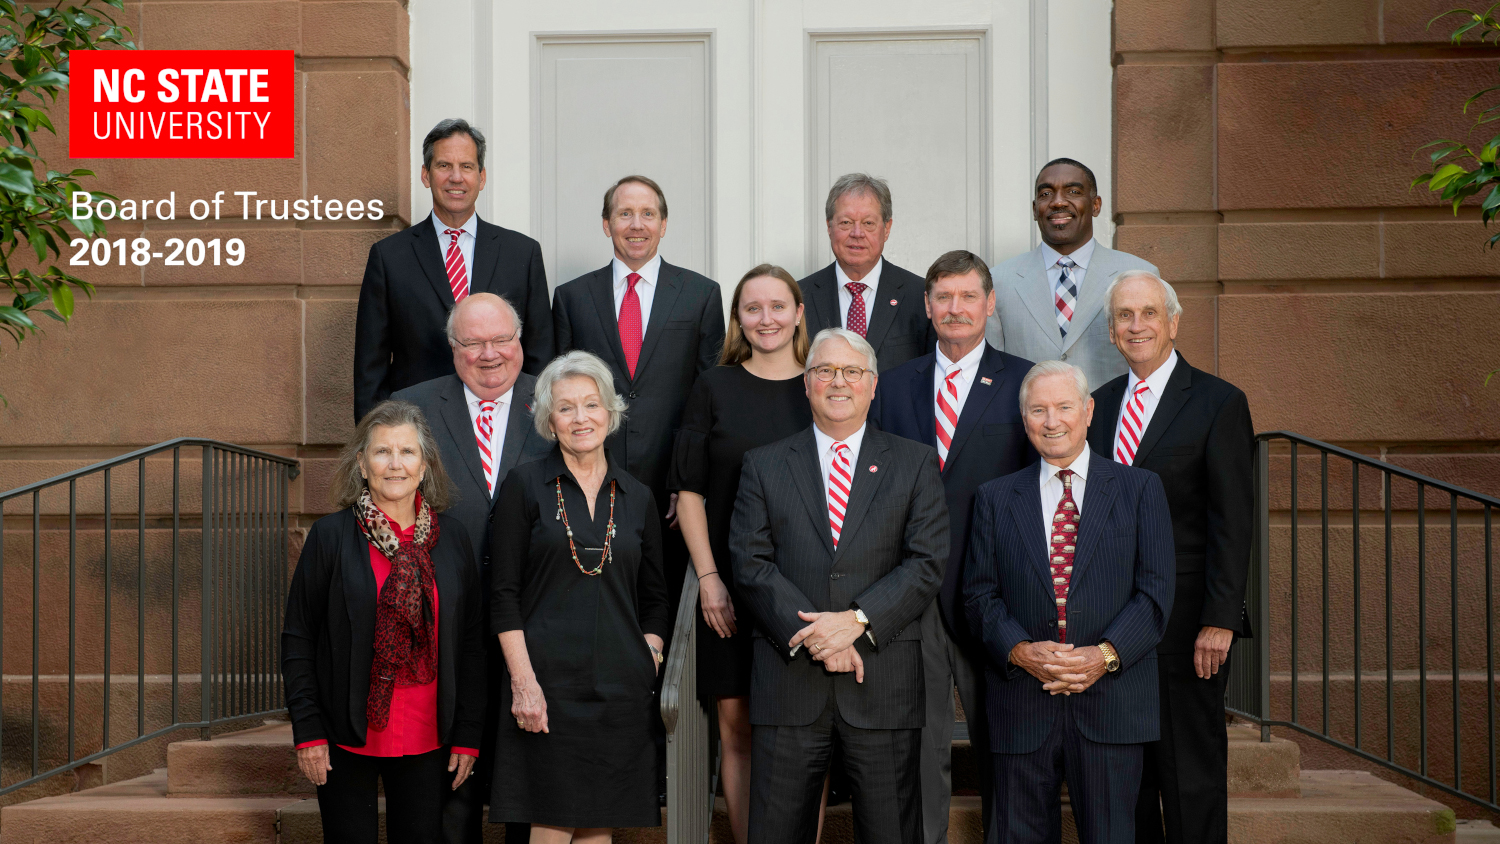 NC State Board of Trustees for 2018-19 with Chancellor